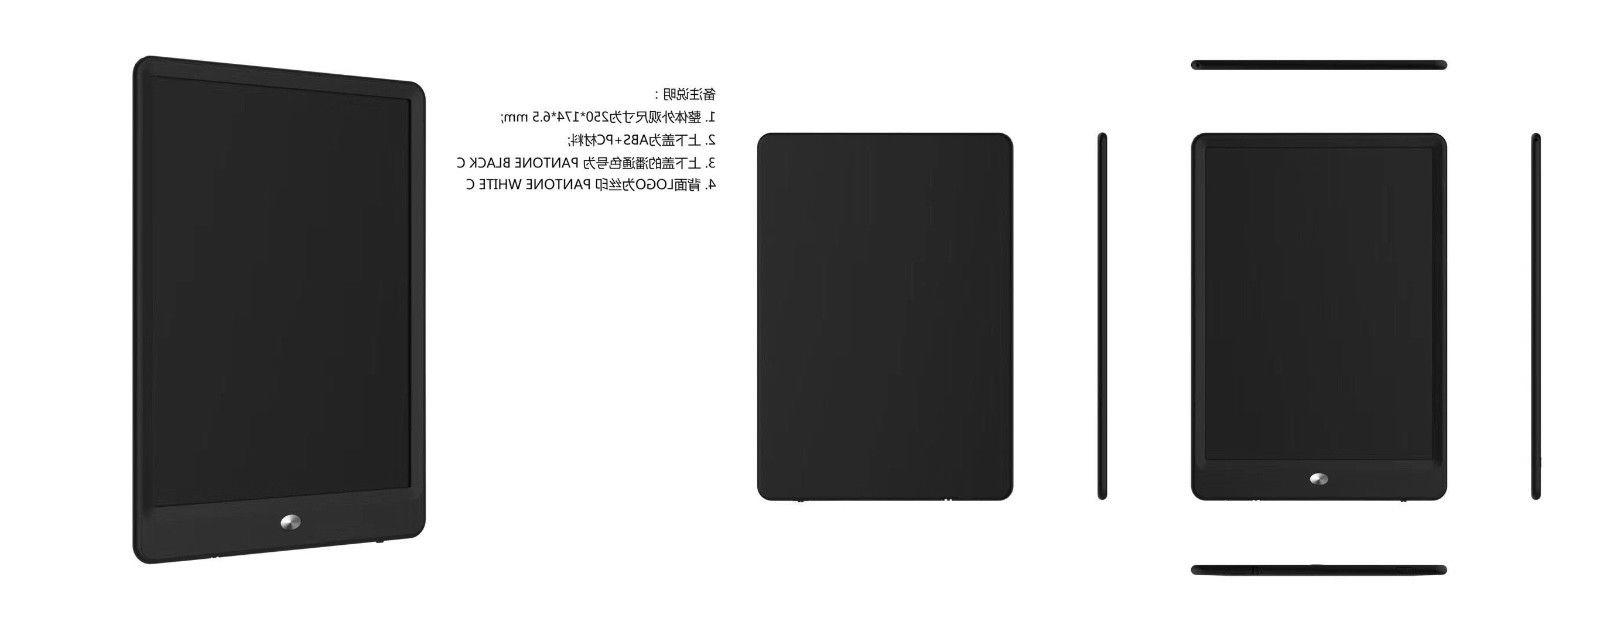 New LCD E-Writing Tablet Pad Learning Gift